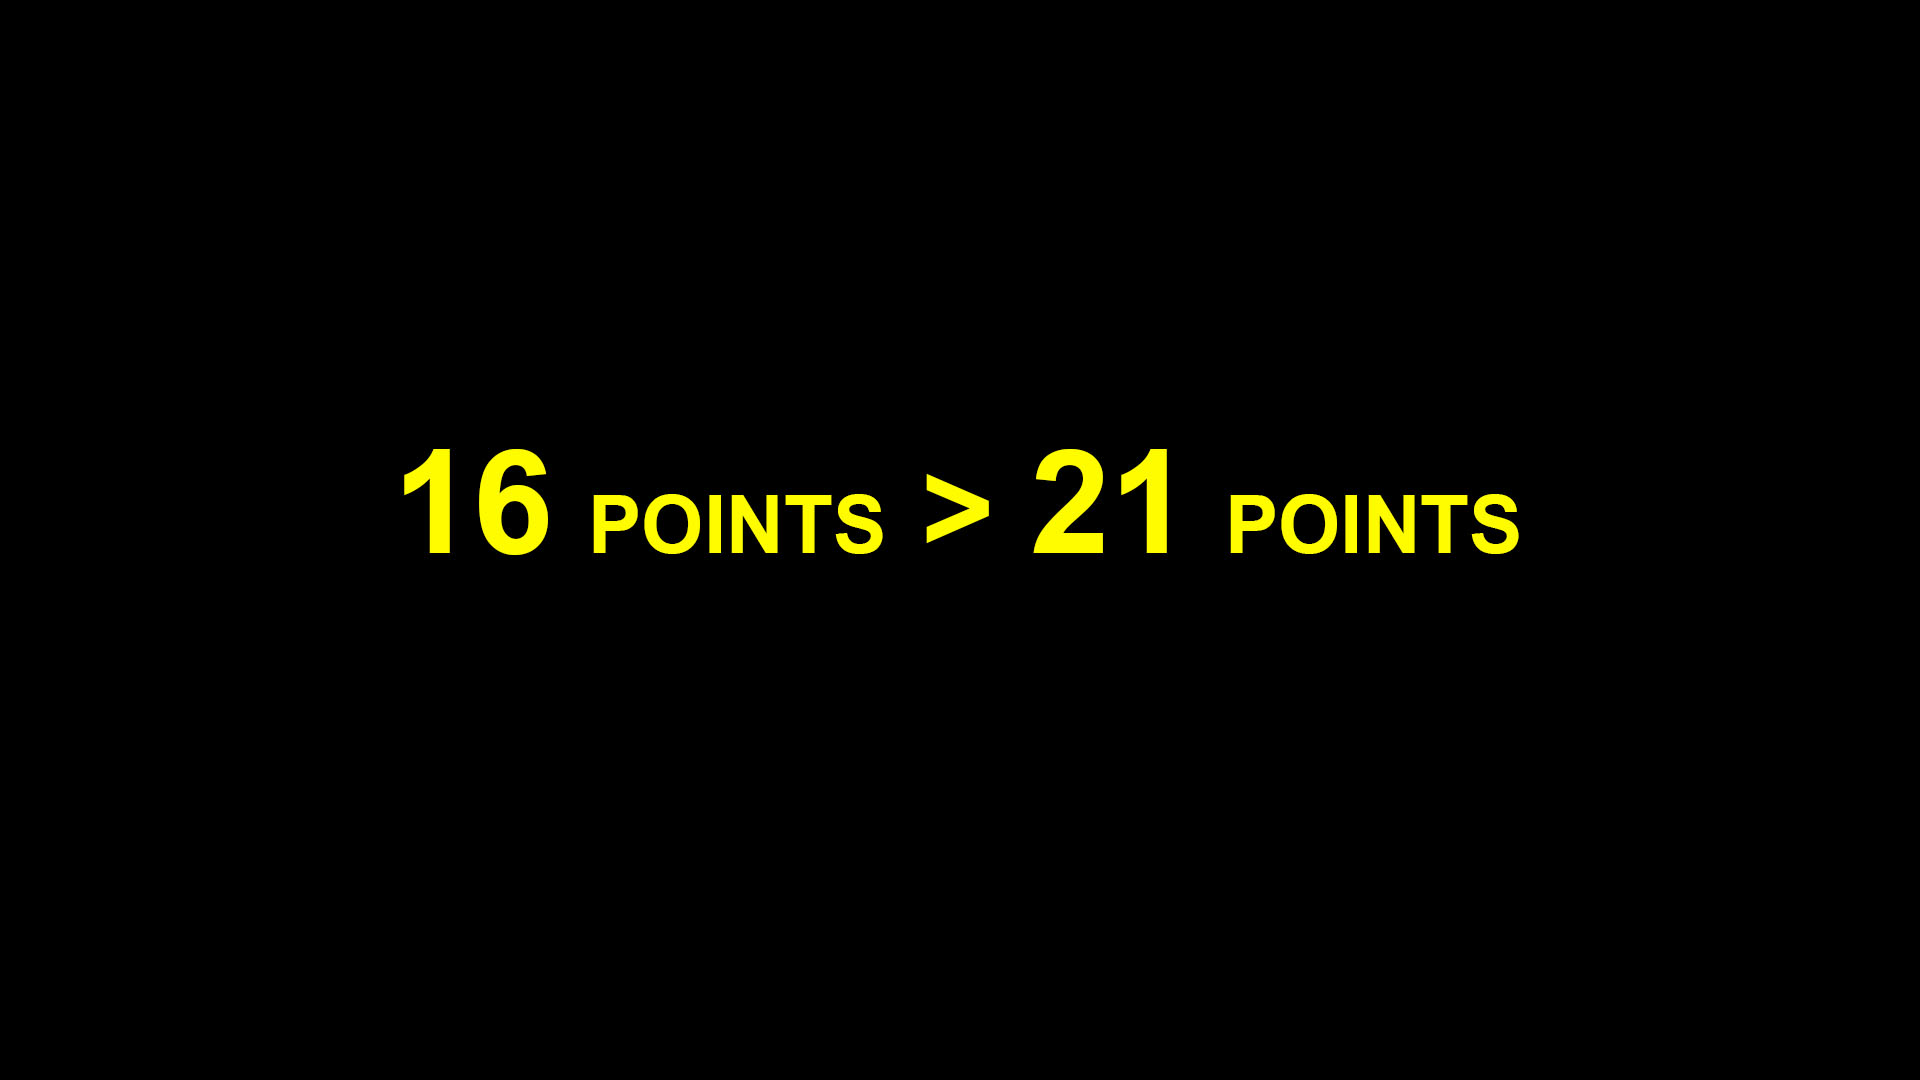 """""""16 POINTS > 21 POINTS."""""""